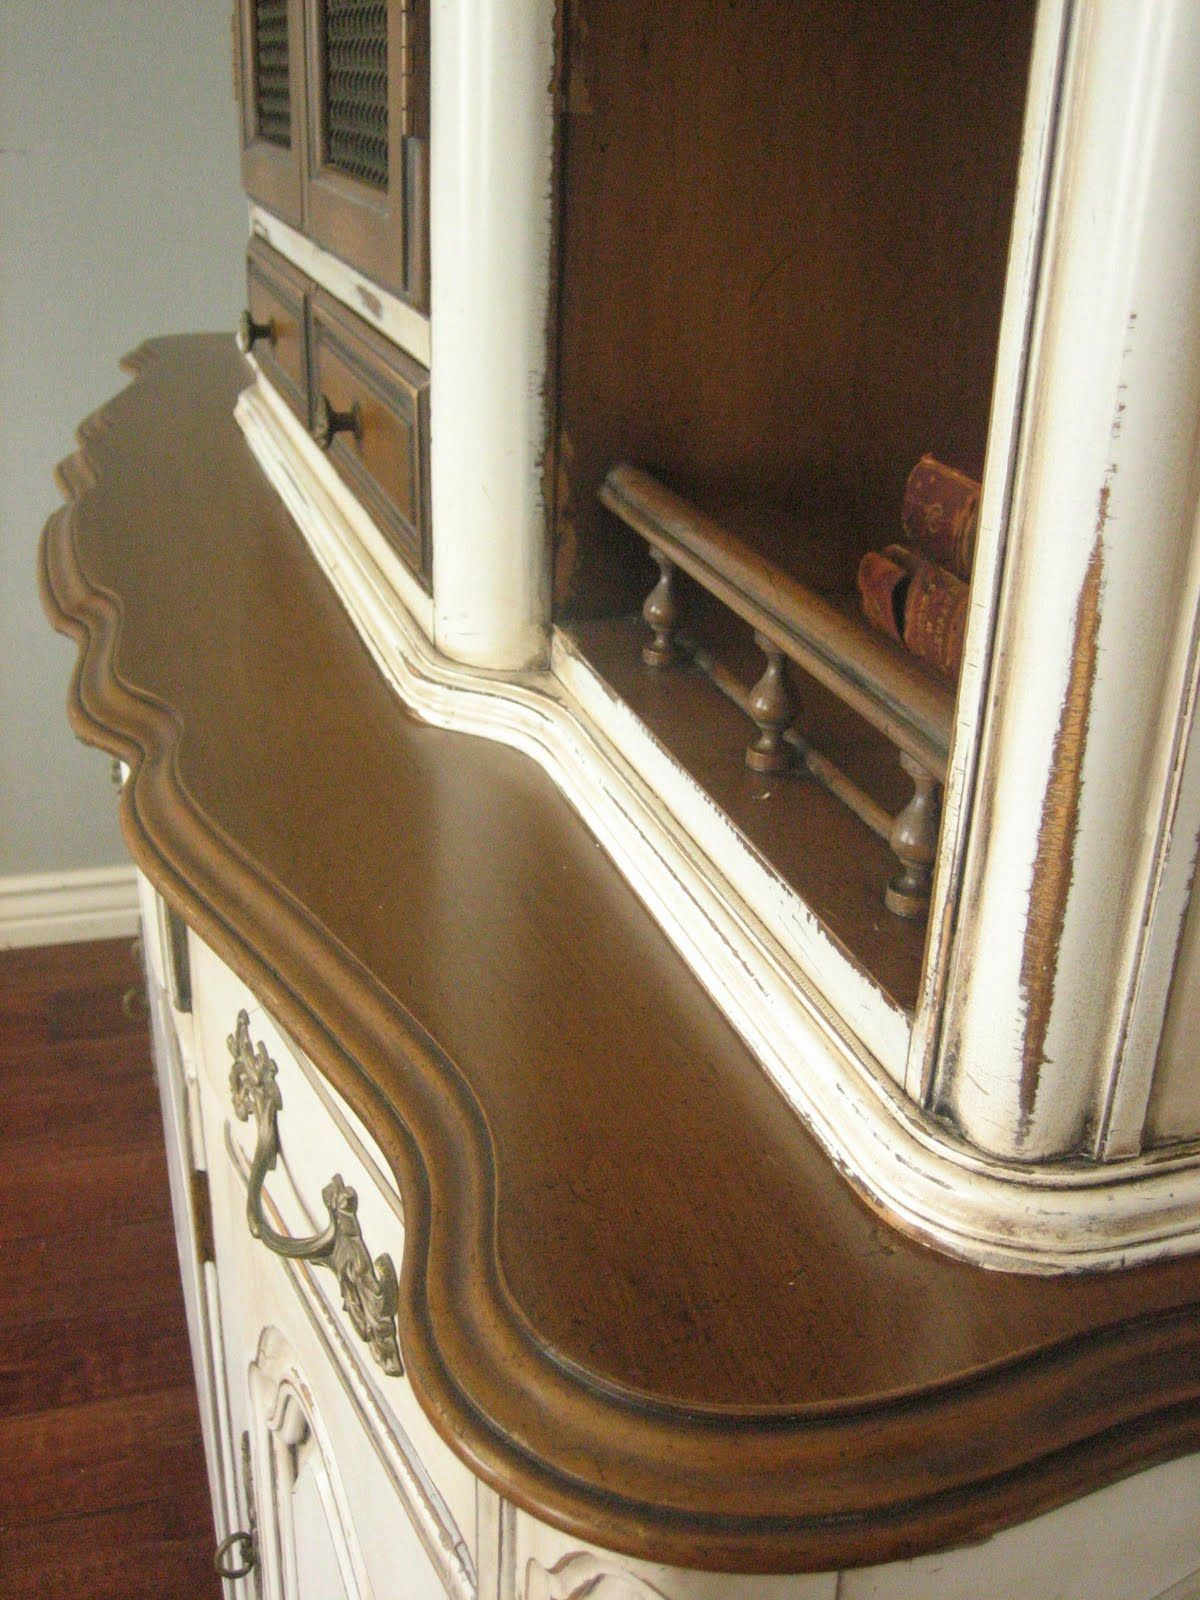 Sold Solid Pecan Wood French Provincial Hutch High End Quality By The Makers Of White Fine Furniture Co Mebane North Carolina An